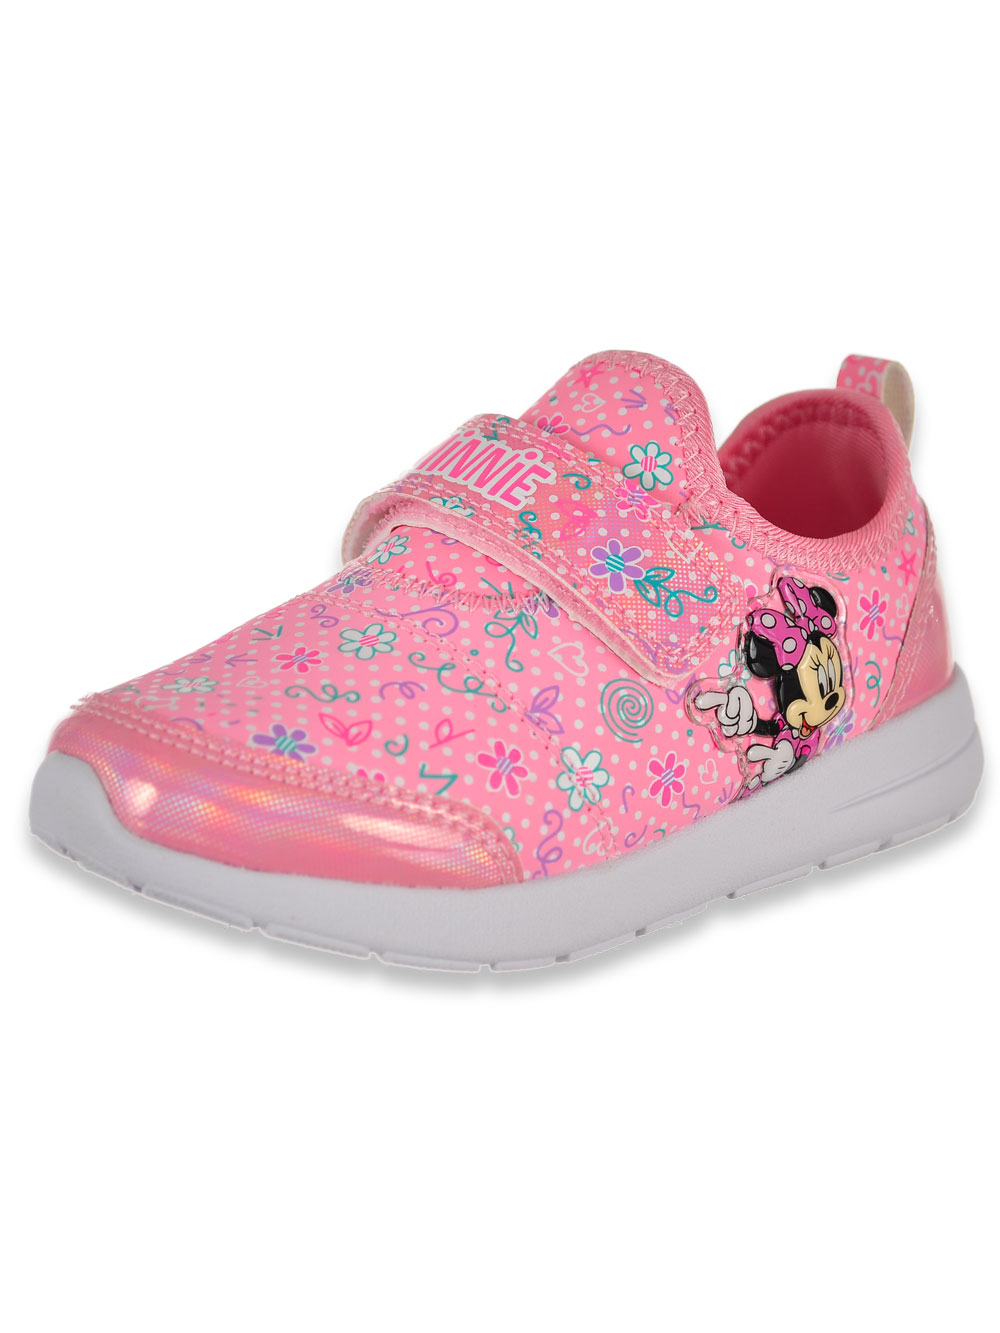 Sneakers Minnie Mouse Light-Up